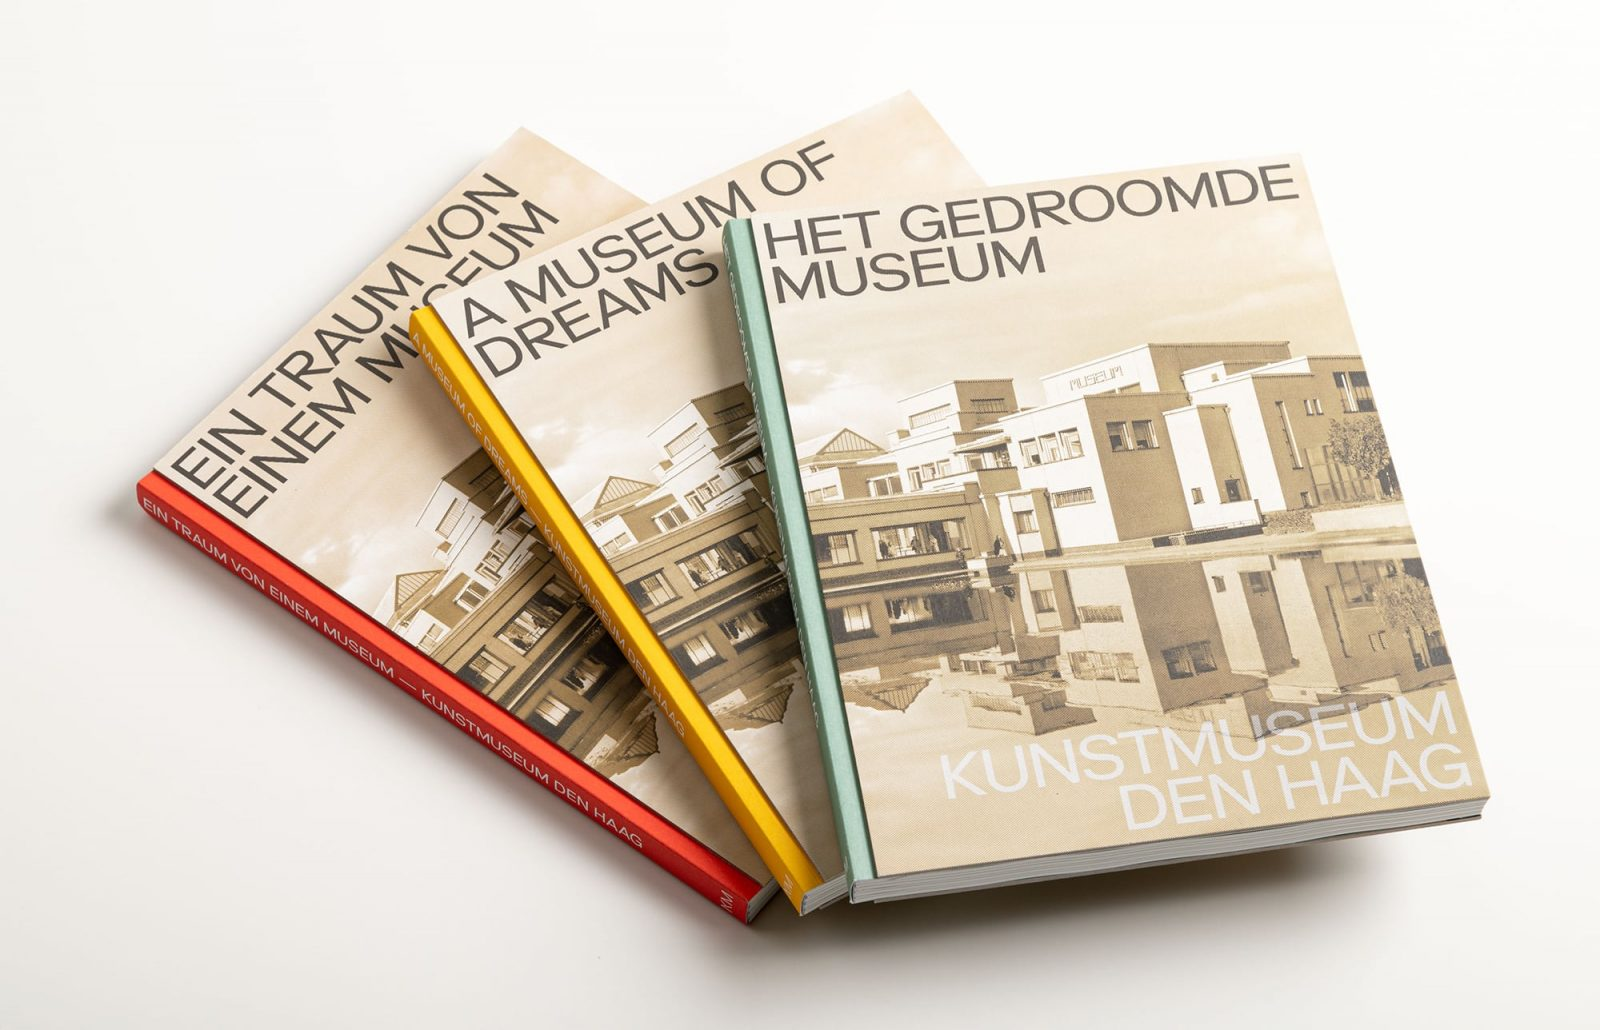 Berlage Kunstmuseum Den Haag A Museum of Dreams book architecture